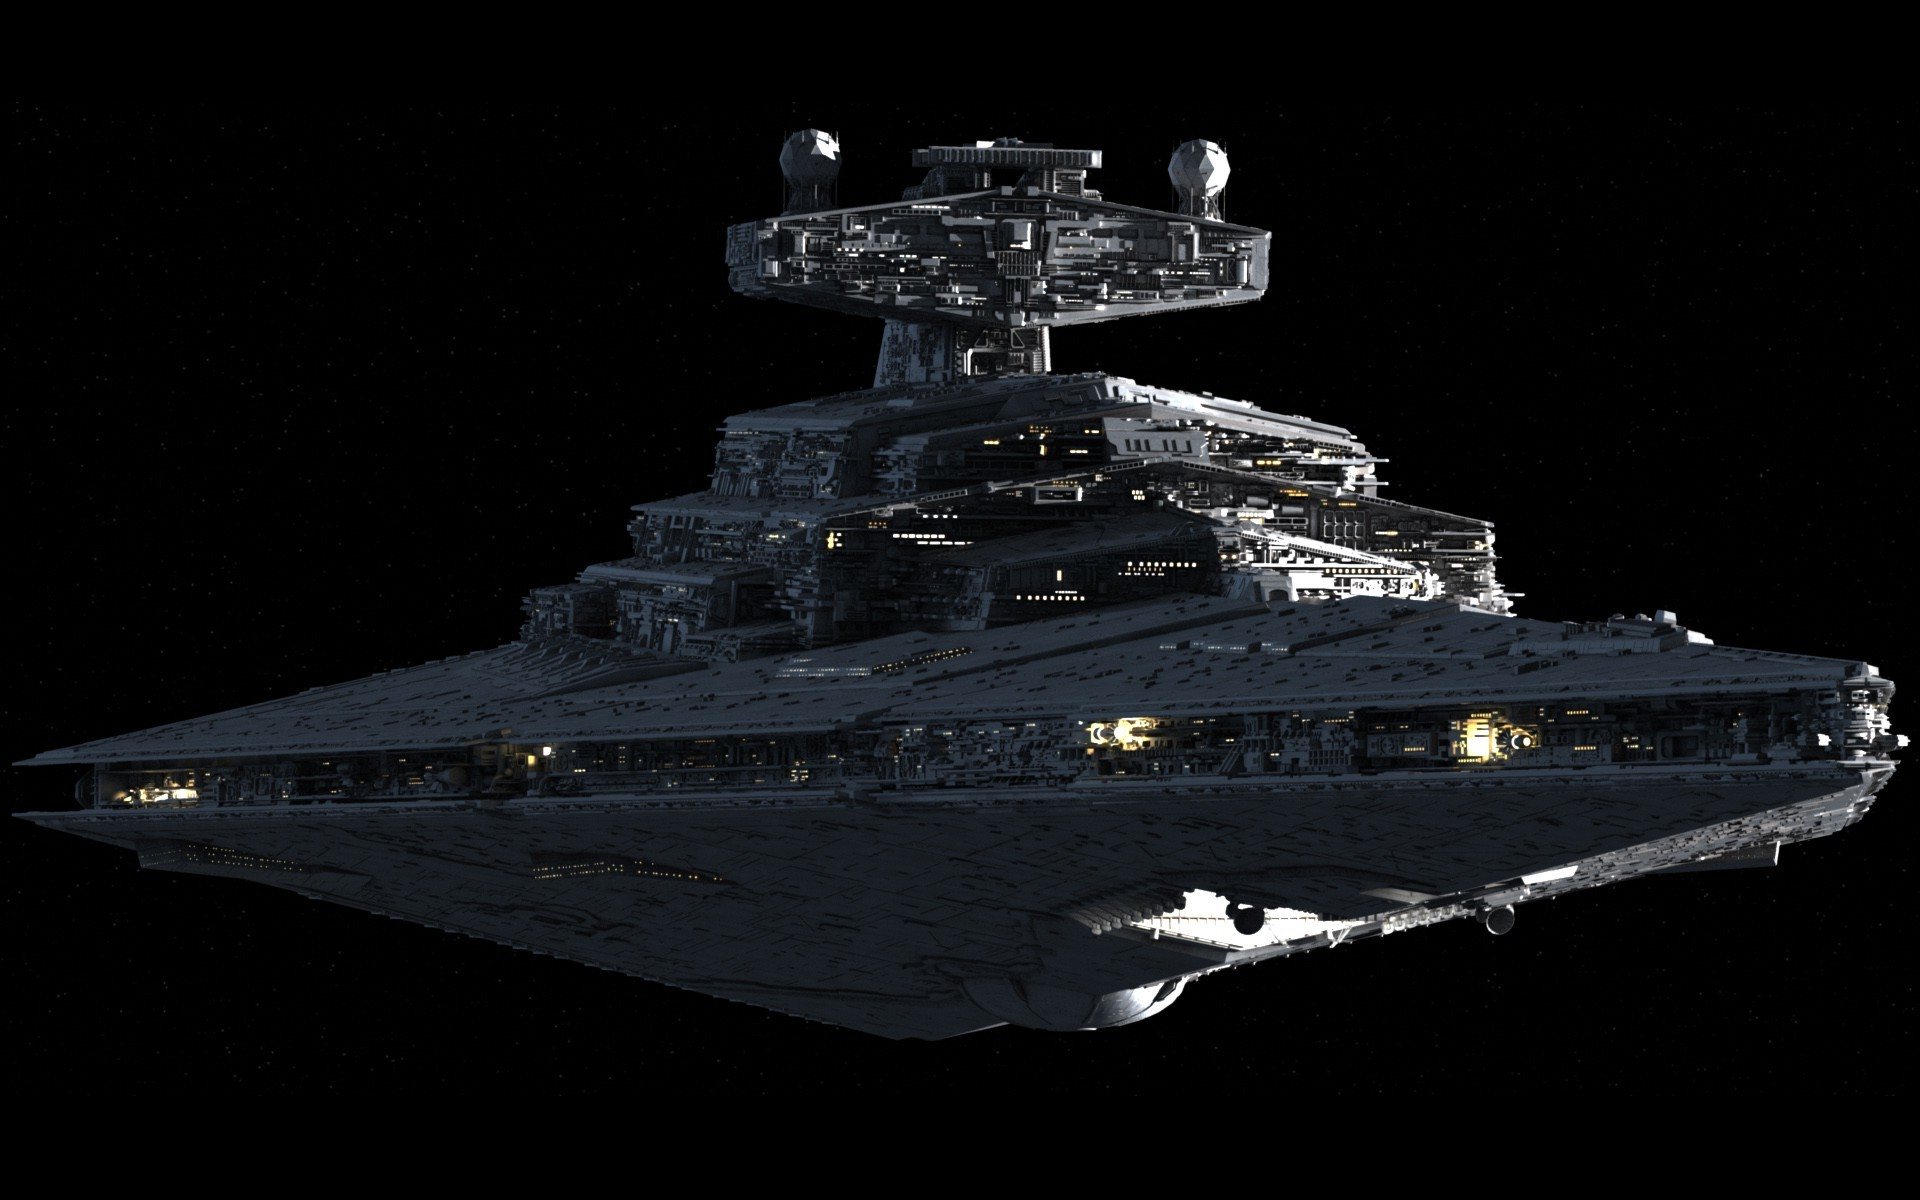 I made a wallpaper of the downed Star Destroyer – Imgur